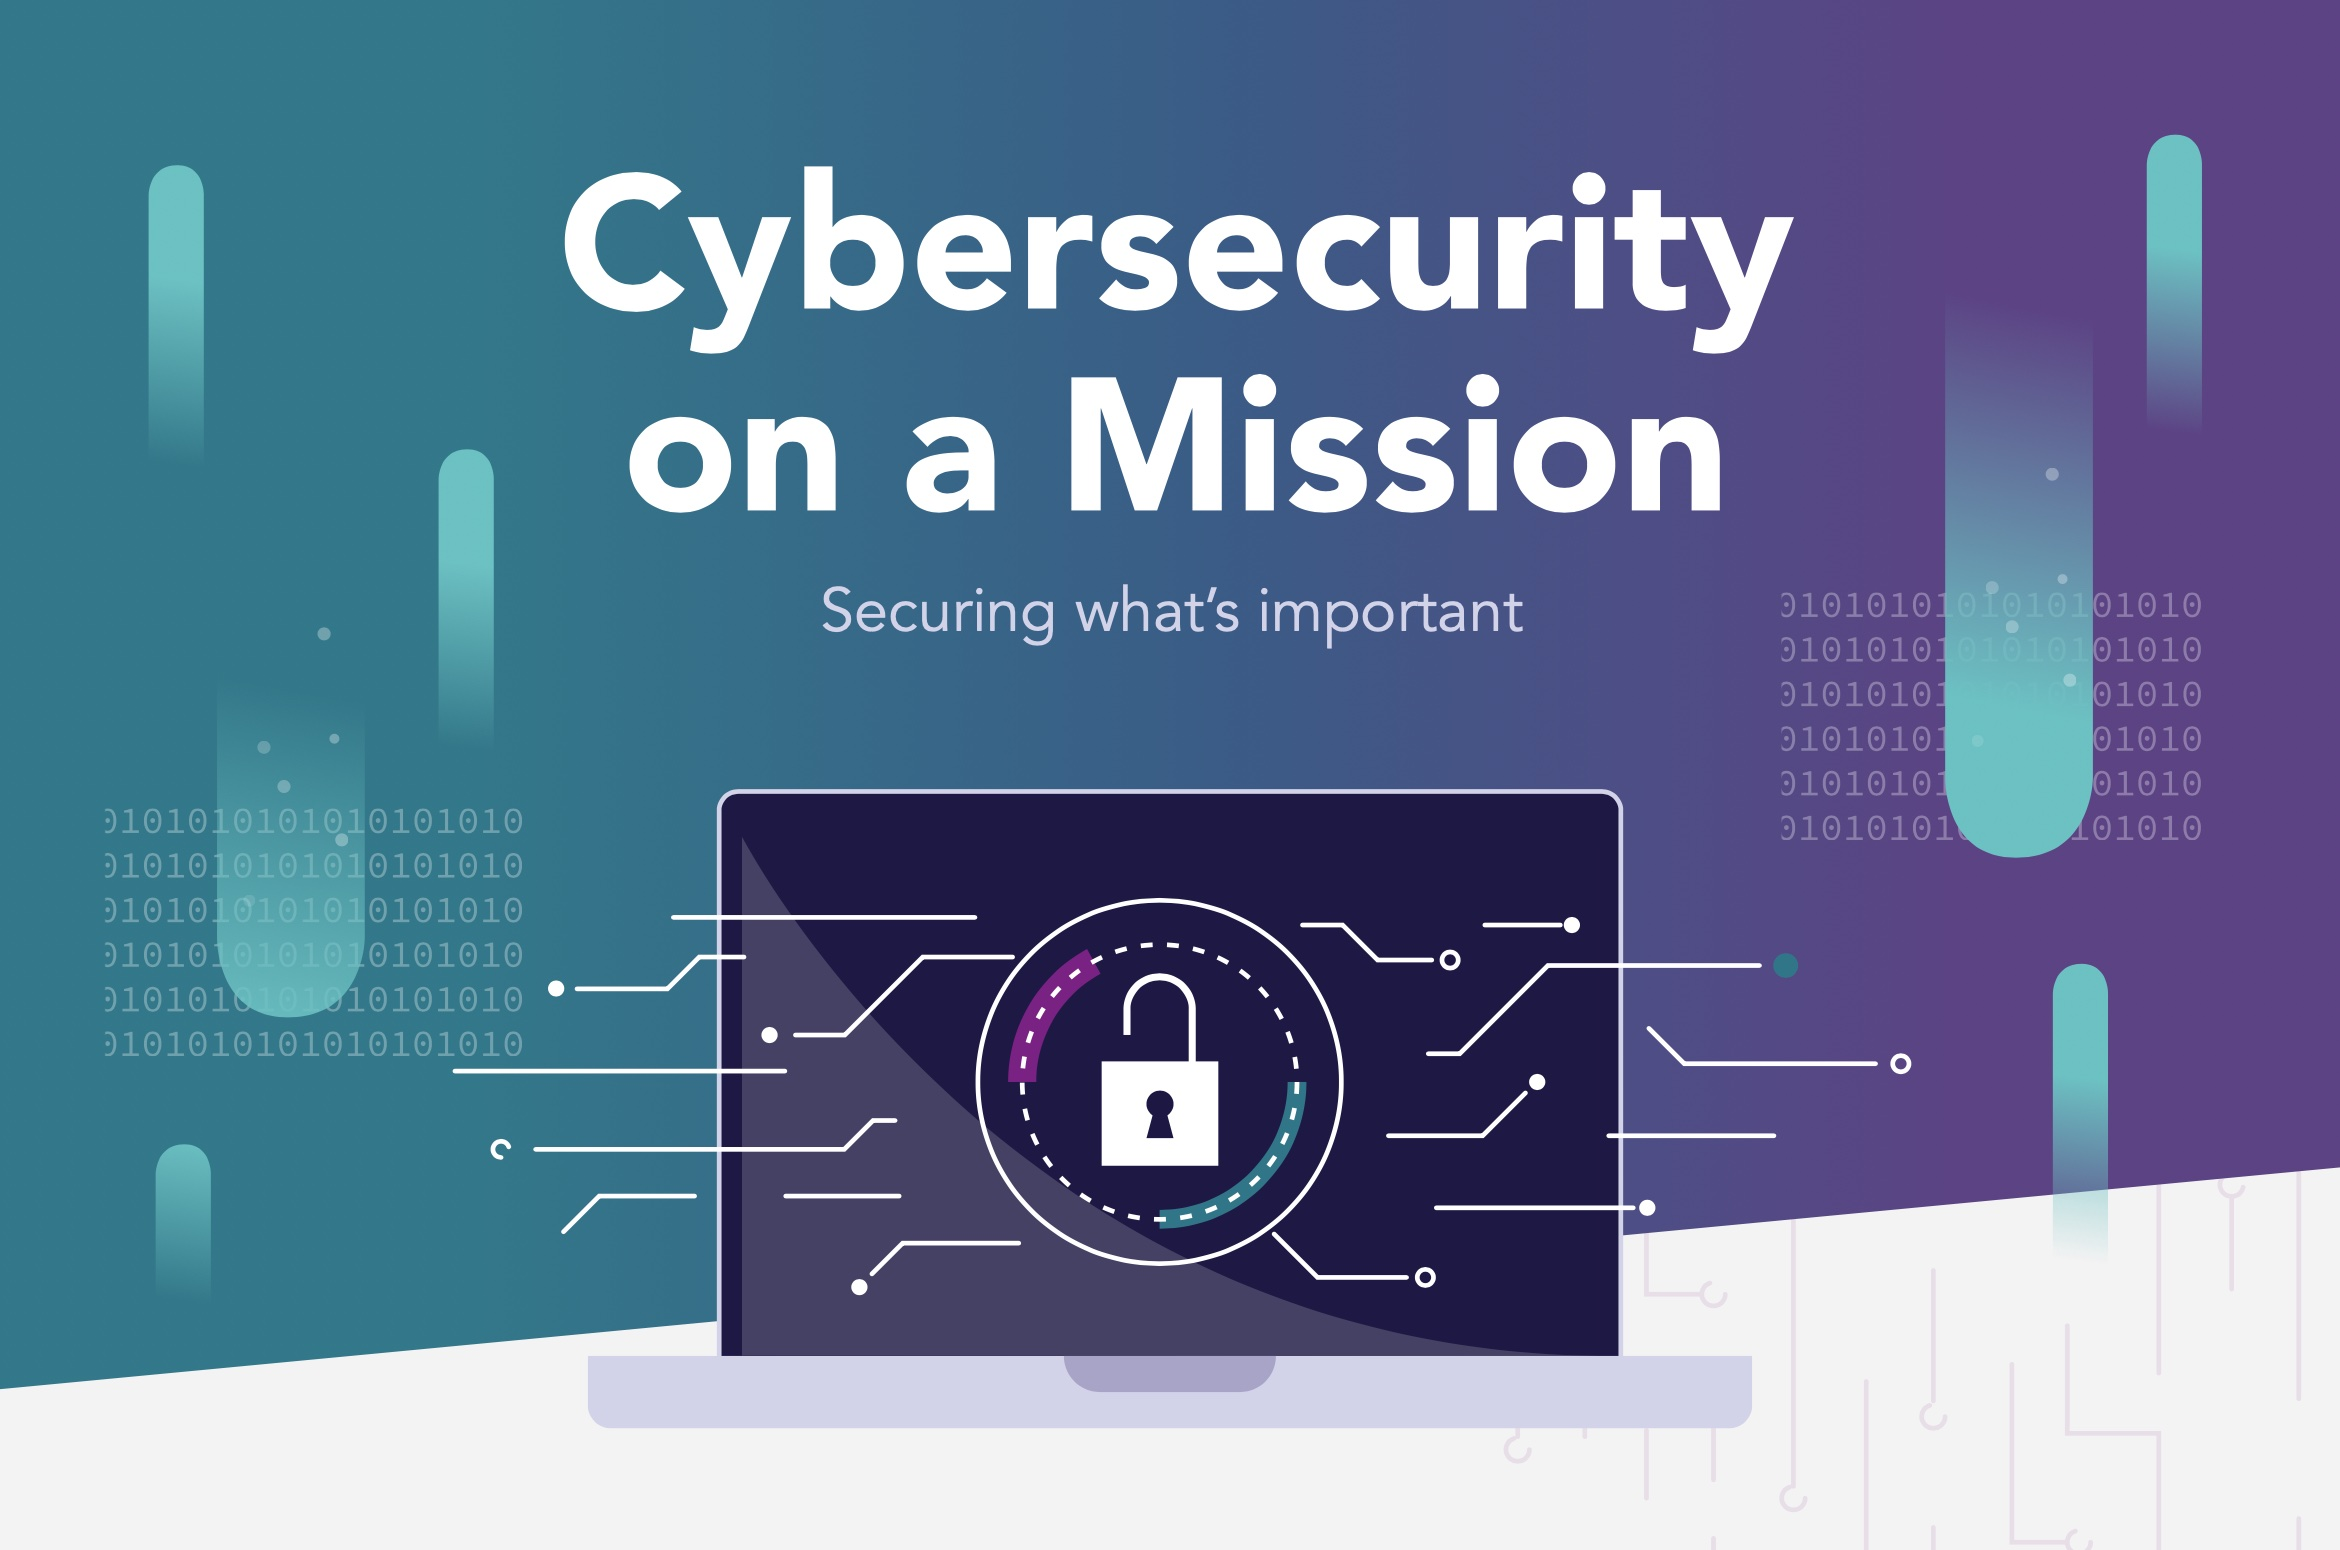 Cybersecurity on a Mission